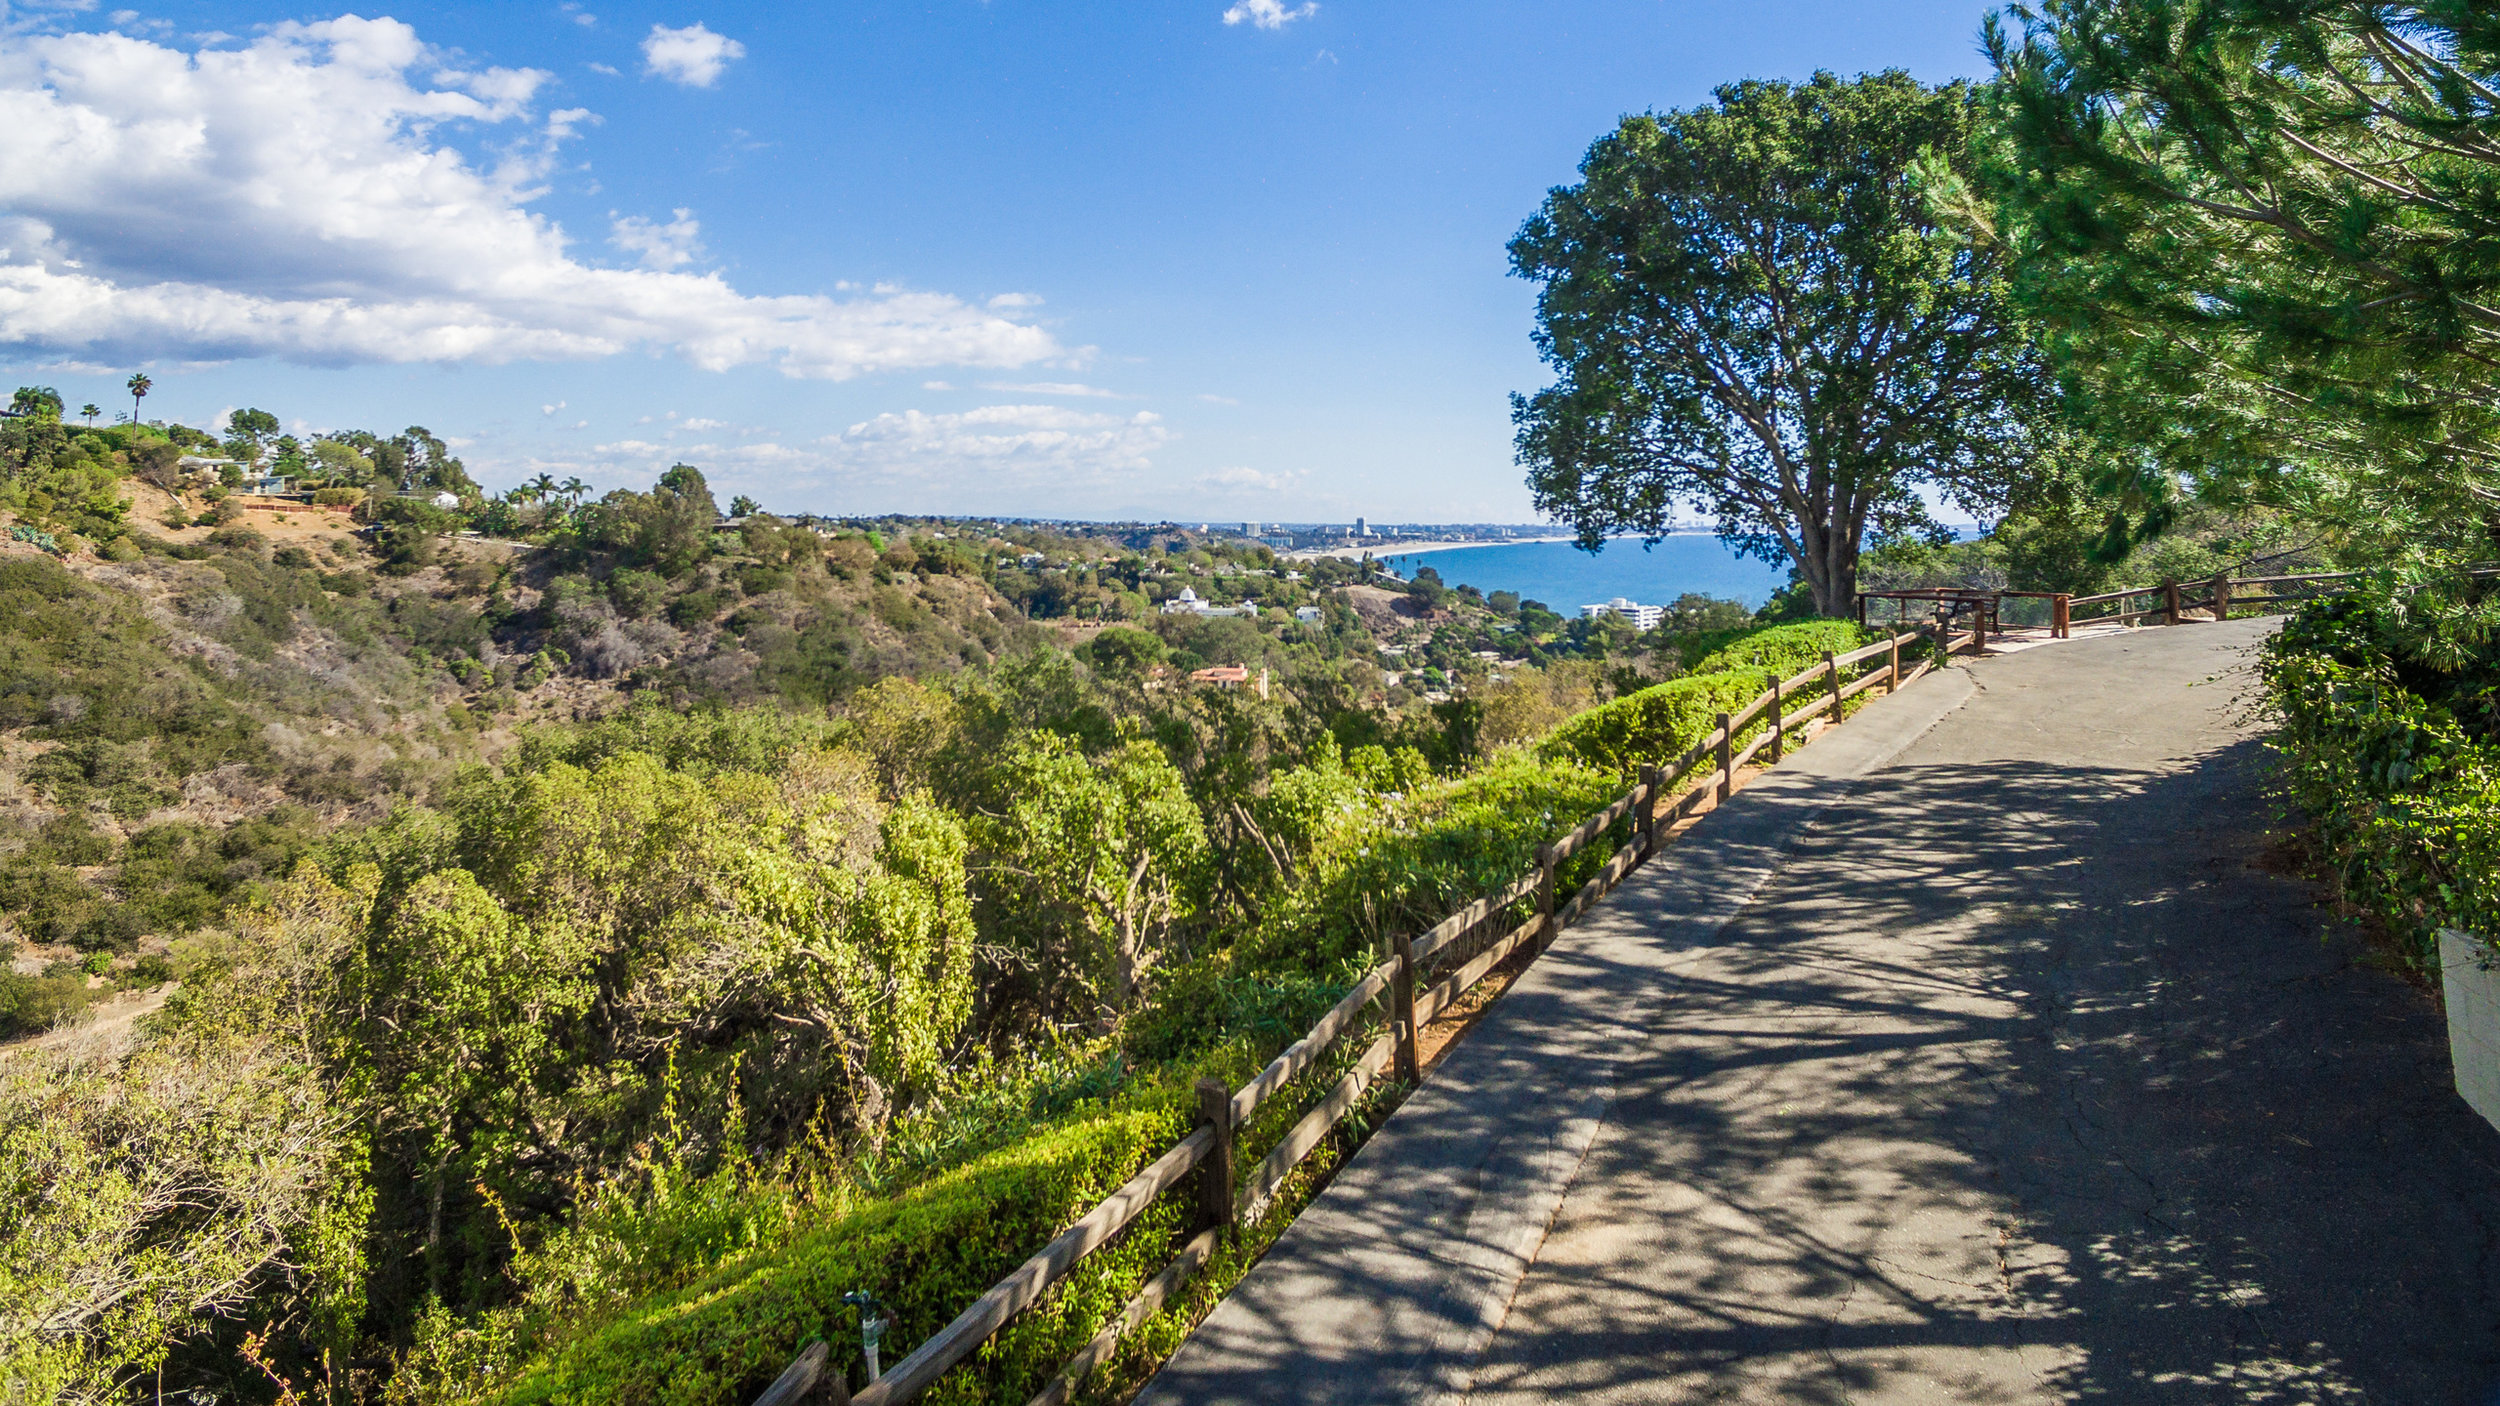 310 Bellino Dr | Pacific Palisades | Offered at $1,995,000